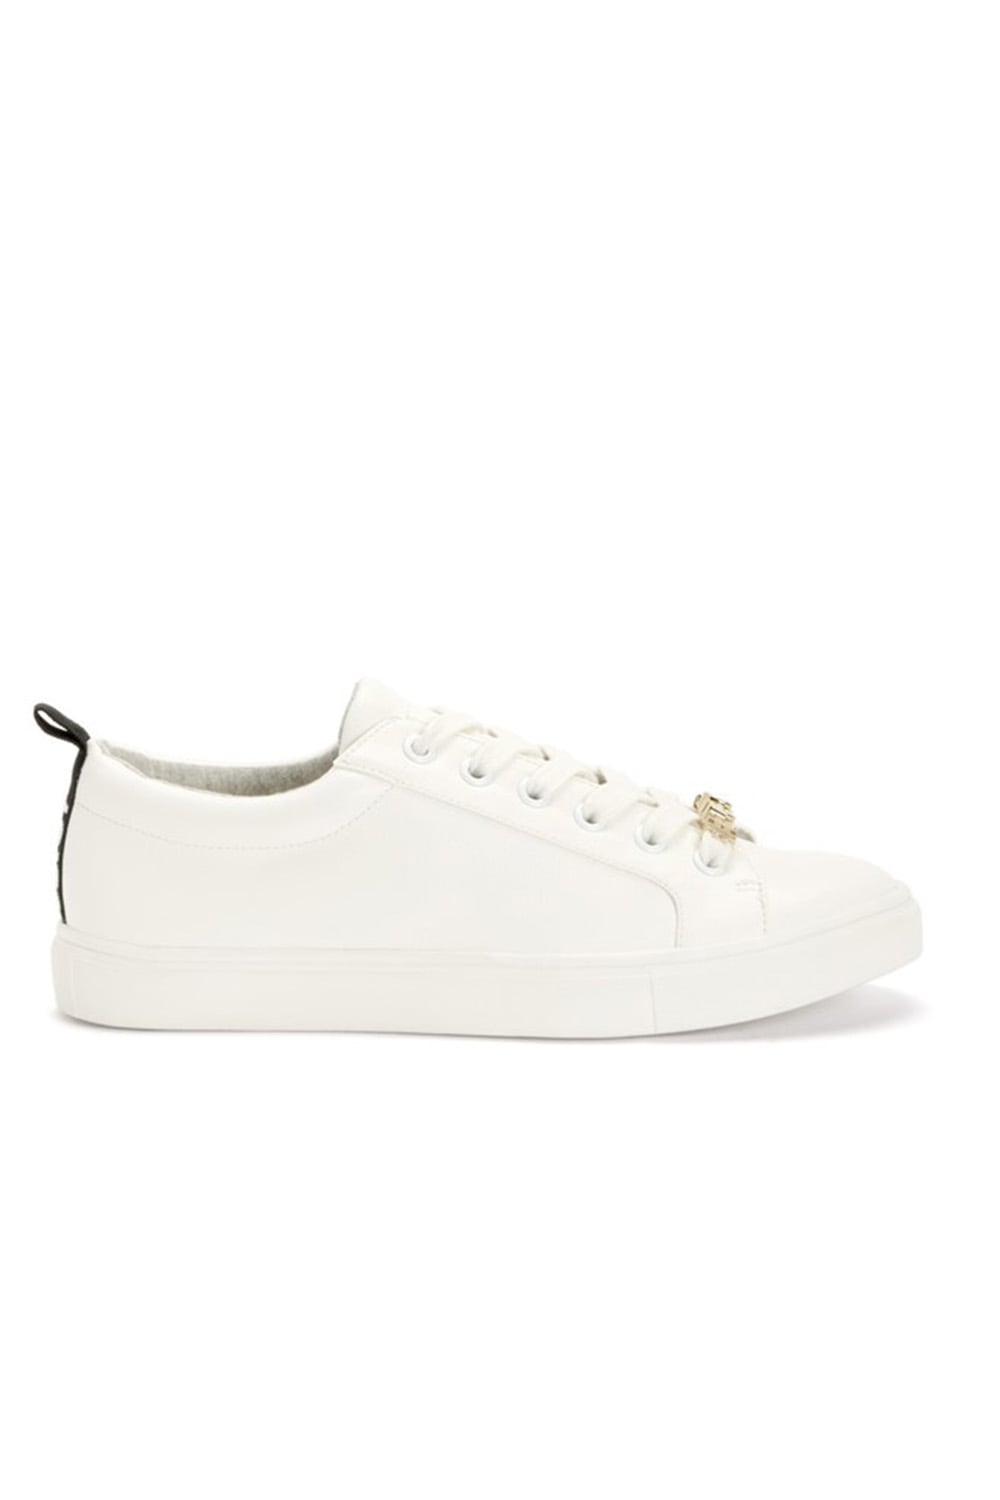 a6c8dd5886a9 Sneakers Juicy Couture 008302